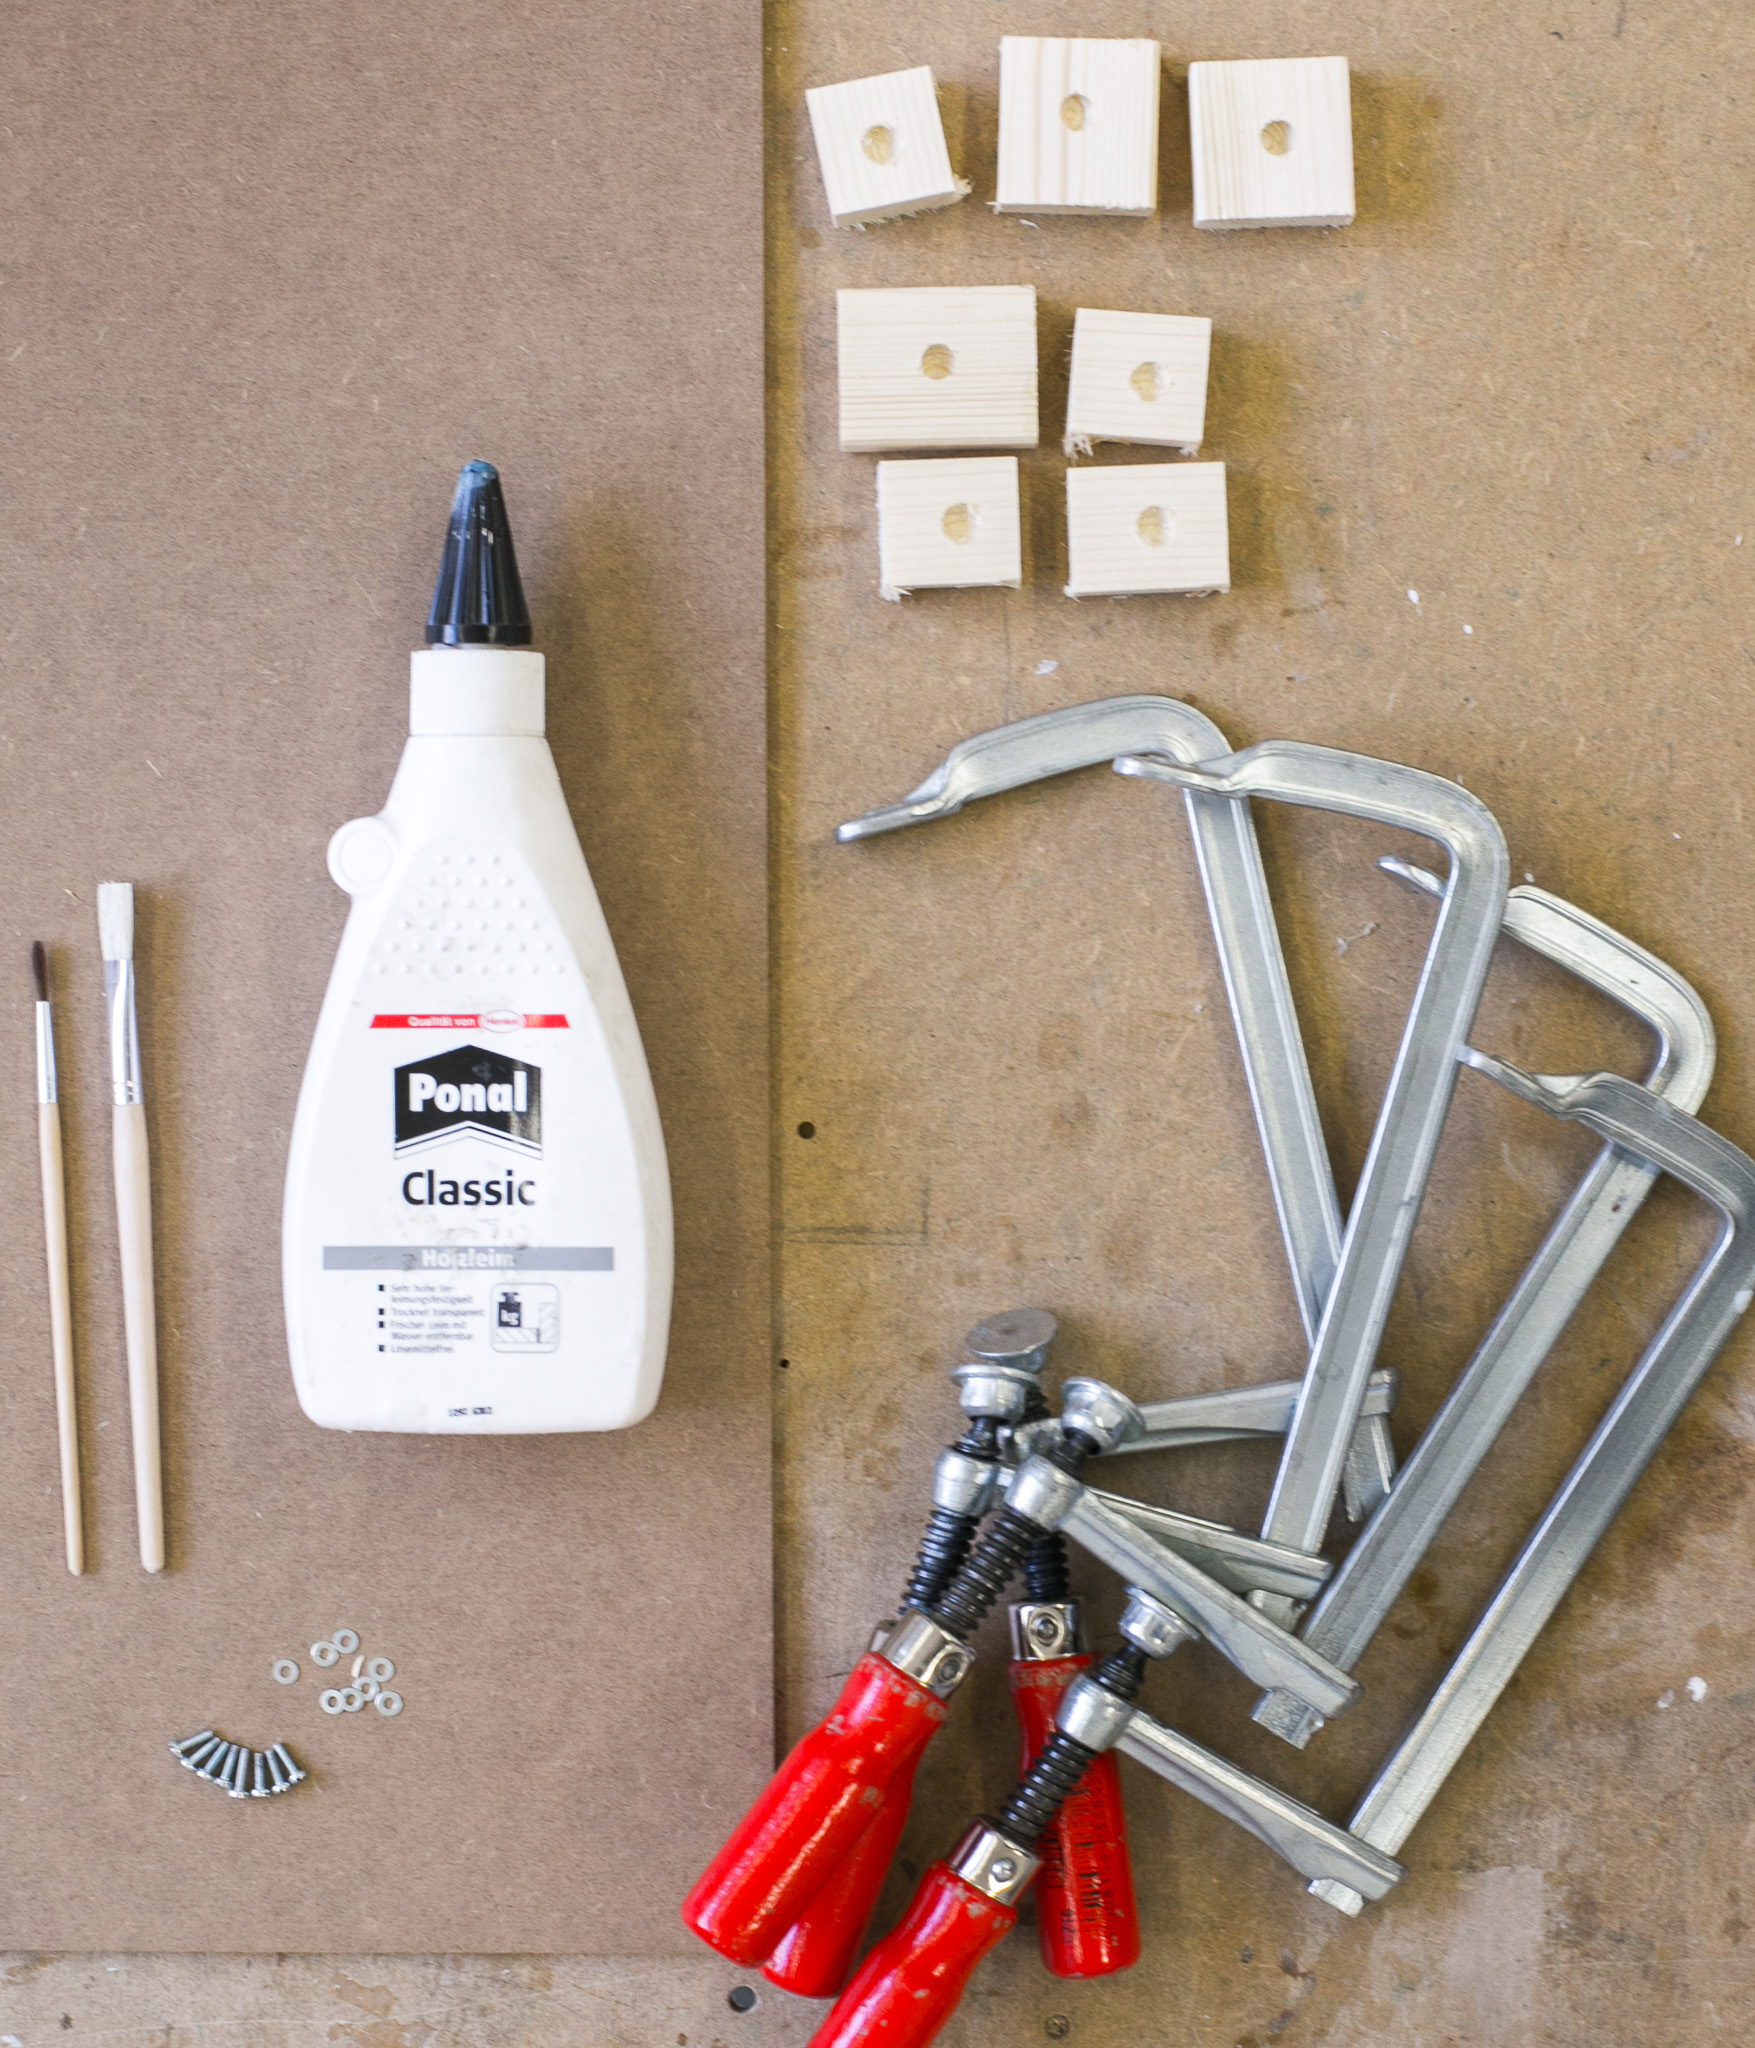 Wood glue, C-clamps, brushes, screws